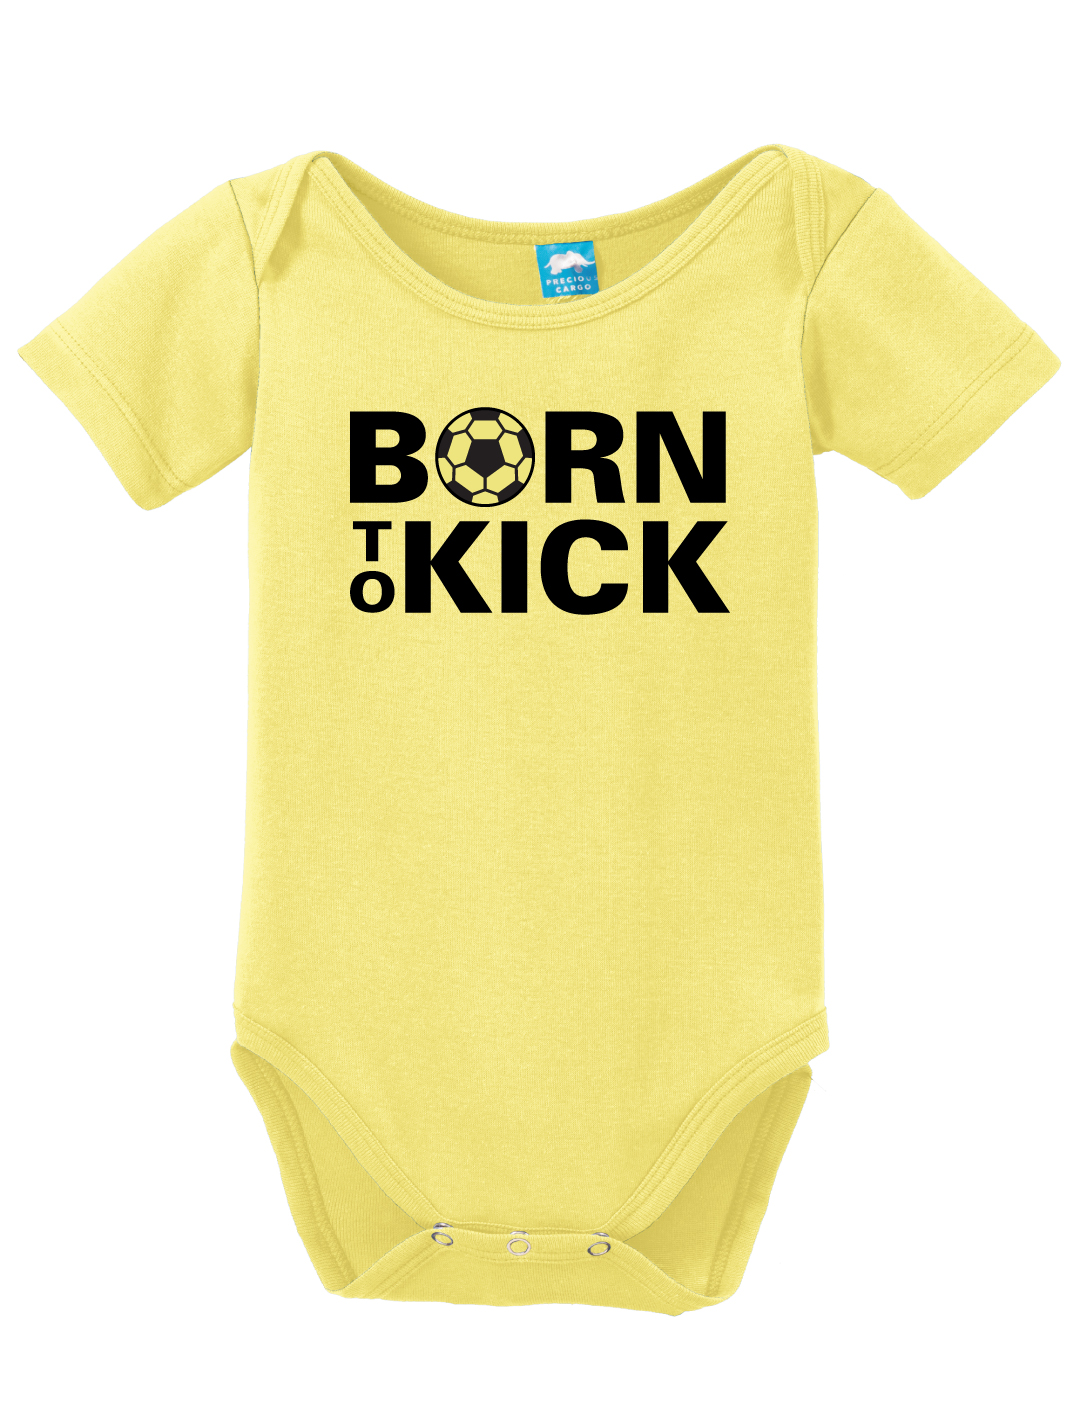 Soccer Baby onesie in yellow by Code Four Athletics